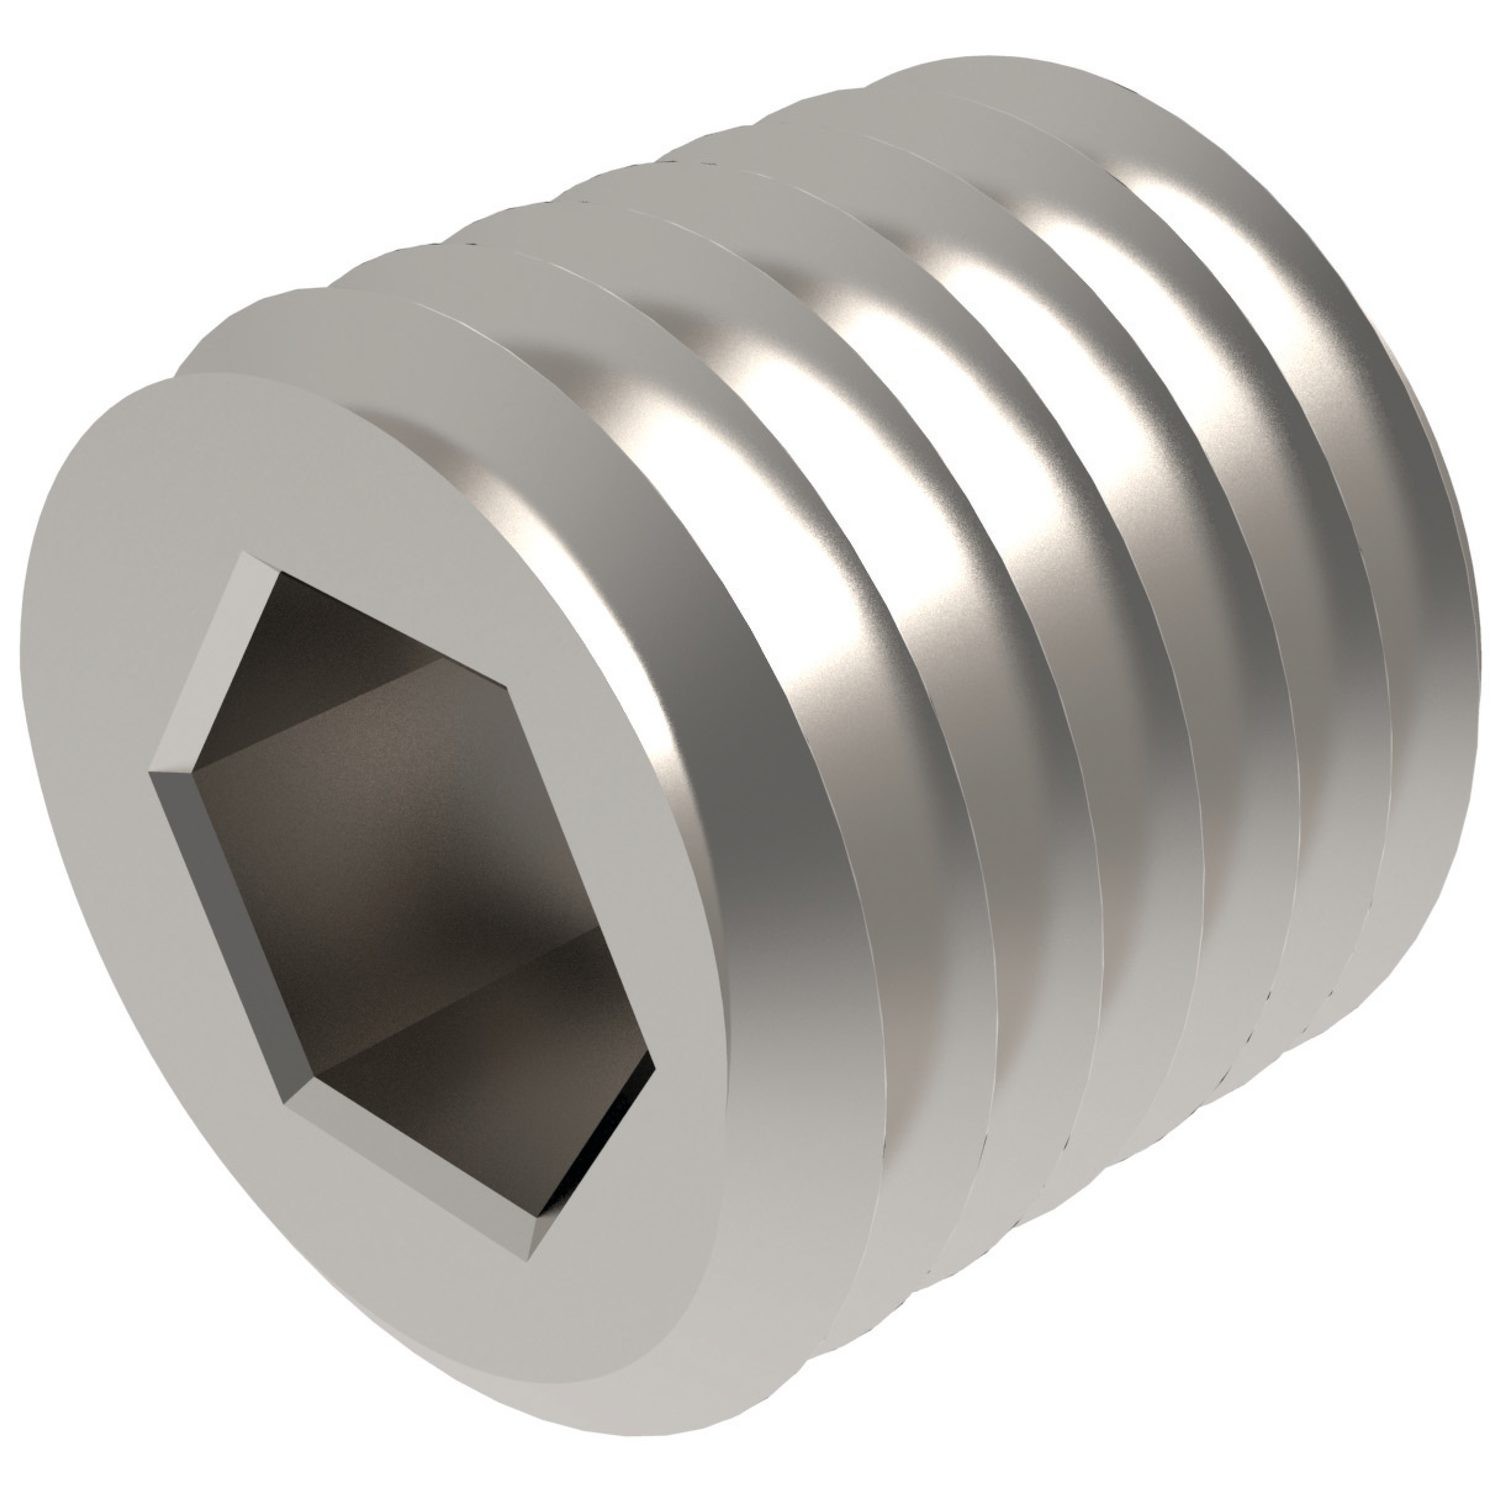 P0199 - Metric Threaded Restrictors